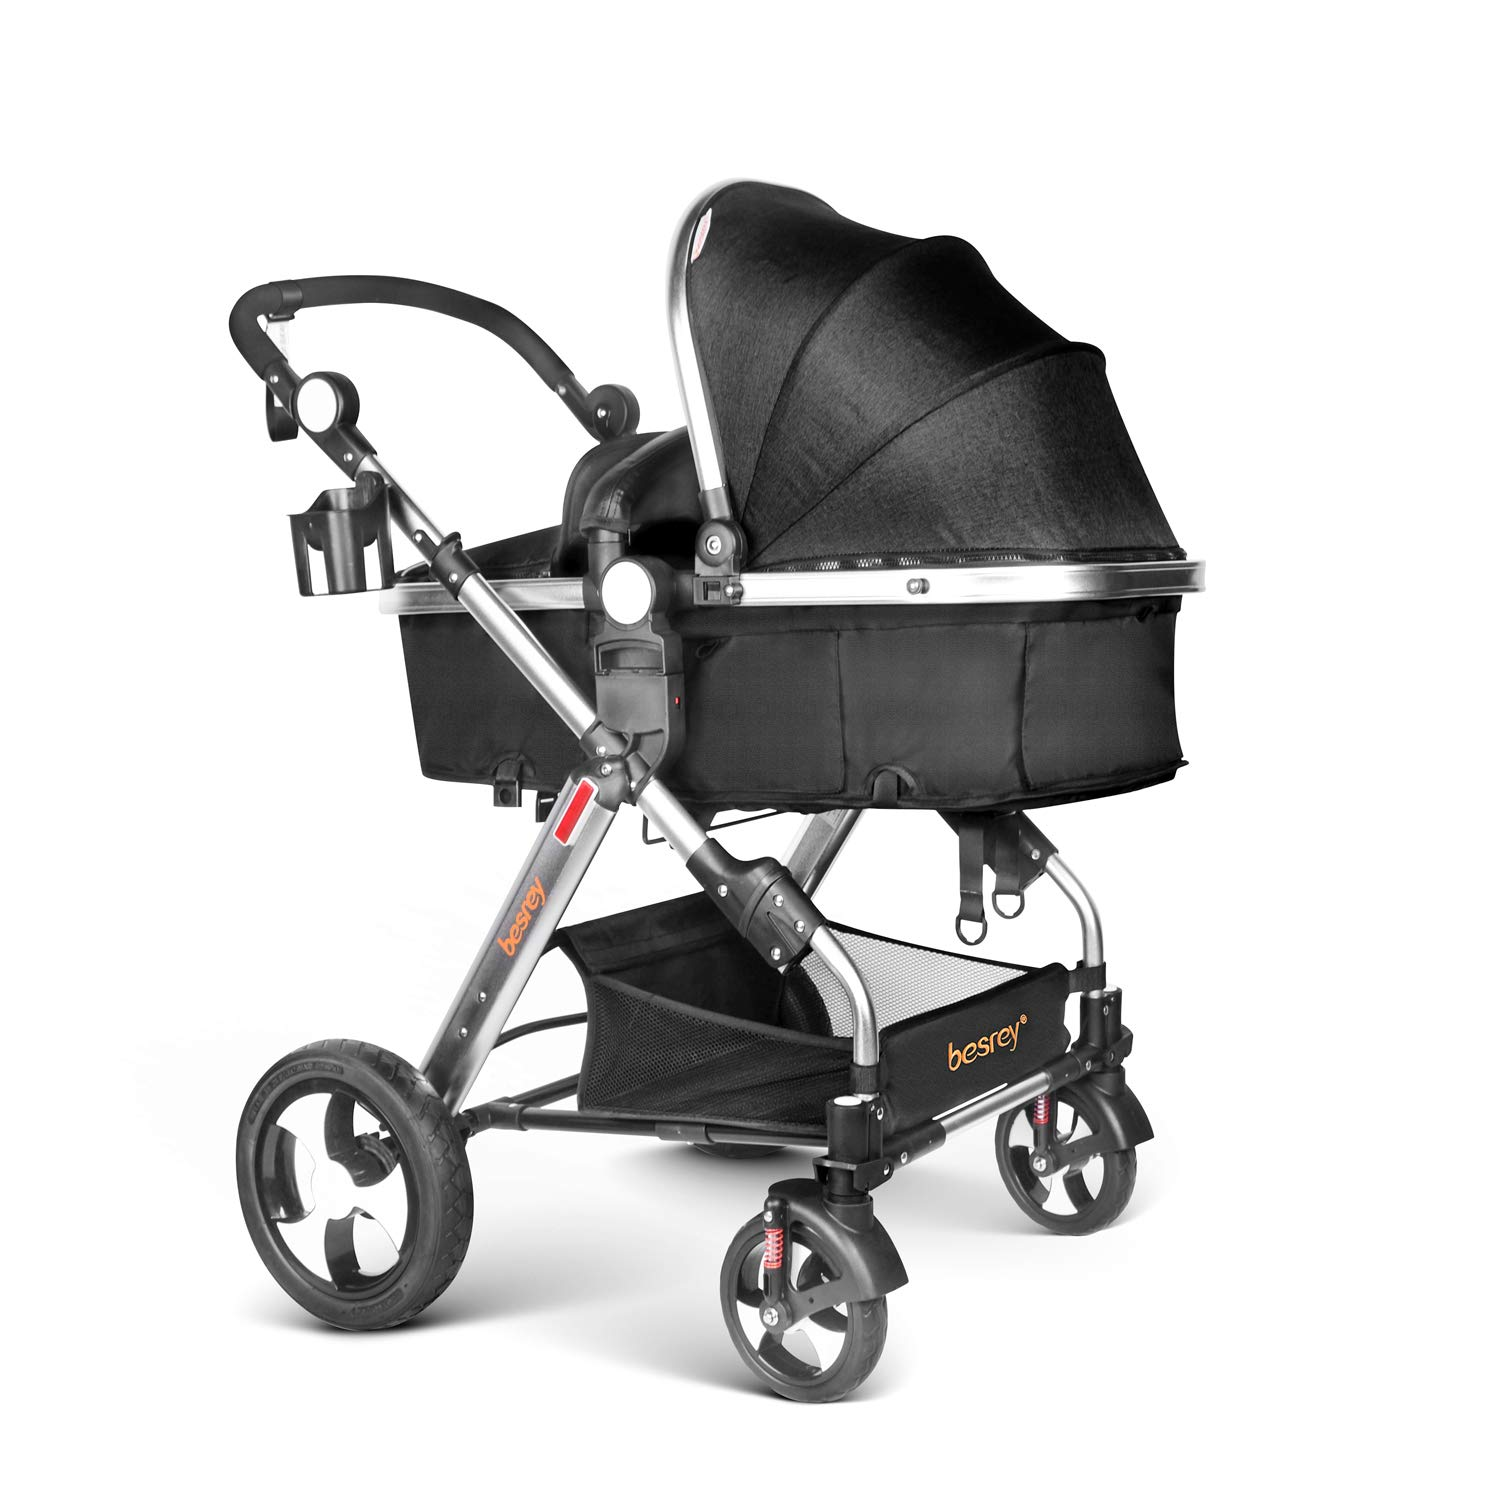 Besrey 2 in1 Luxury Newborn Baby Stroller for Infant Folding Convertible Baby Carriage - Black by besrey